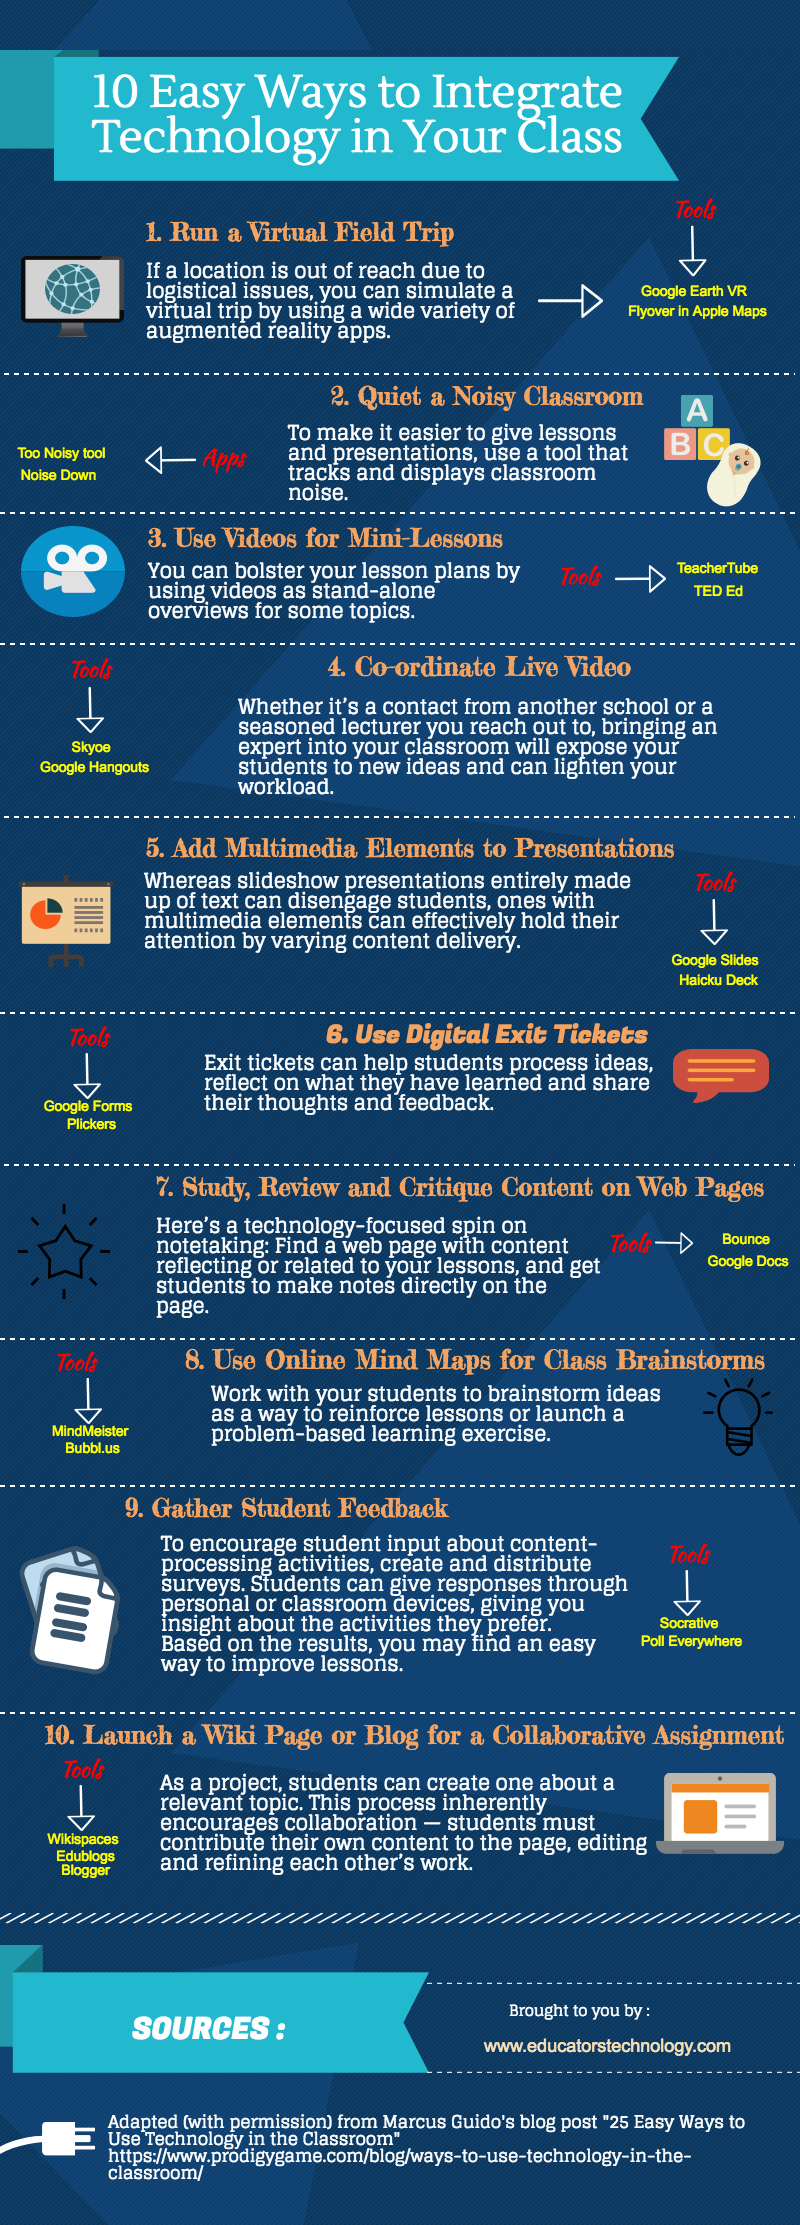 10 Easy Ways to Integrate Technology in Your Classroom (Educational Technology and Mobile Learning)